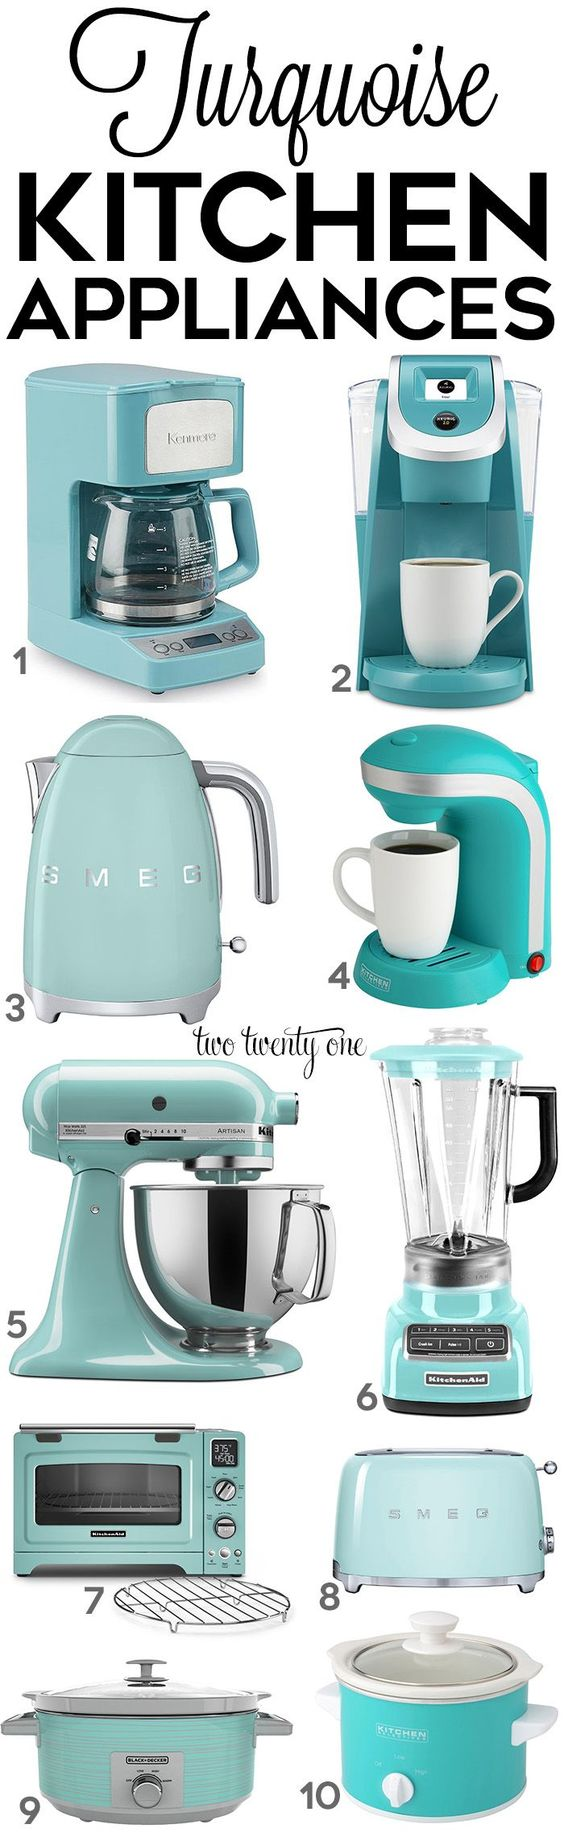 Uncategorized Wireless Kitchen Appliances 8 best hand blenders the independent wireless kitchen appliances nice turquoise decor designs